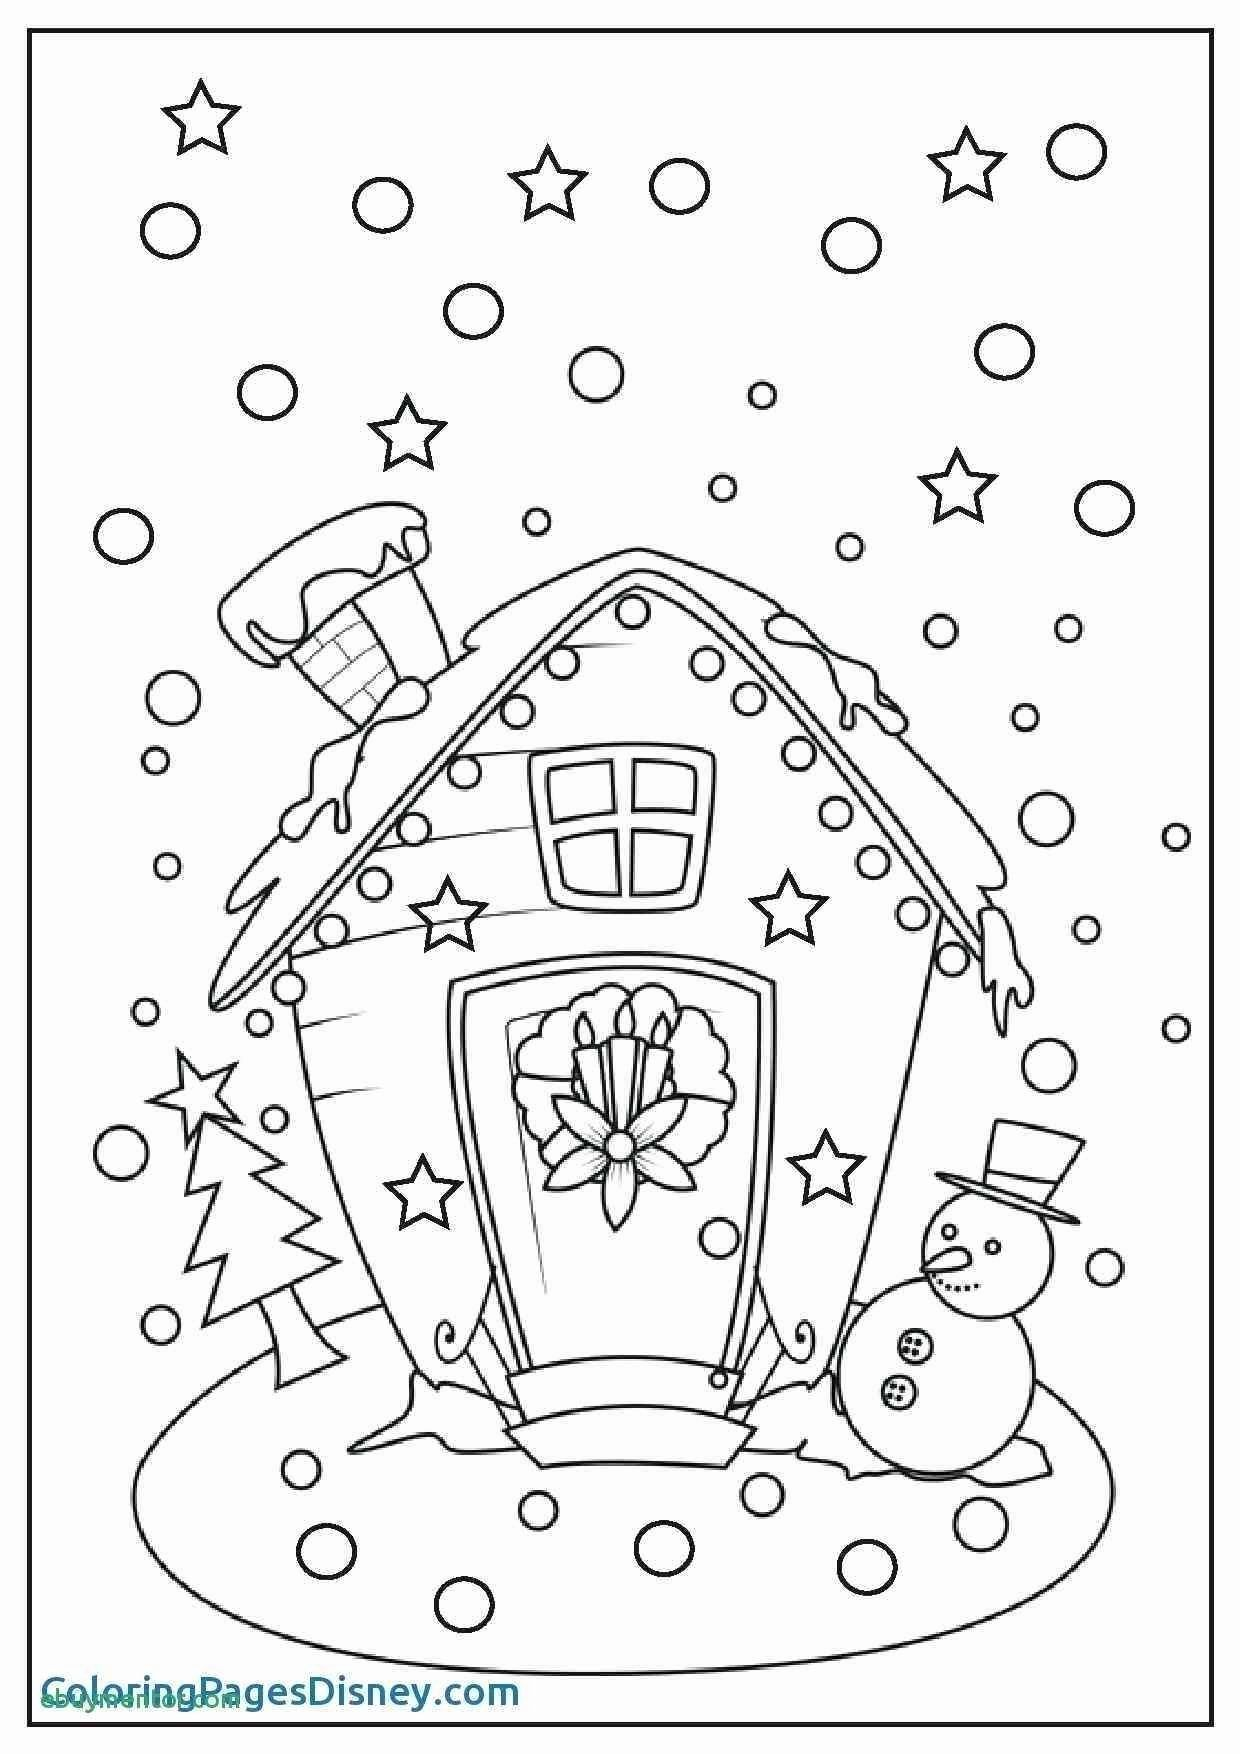 - Coloring Activities For 1st Graders Awesome First Grade Coloring